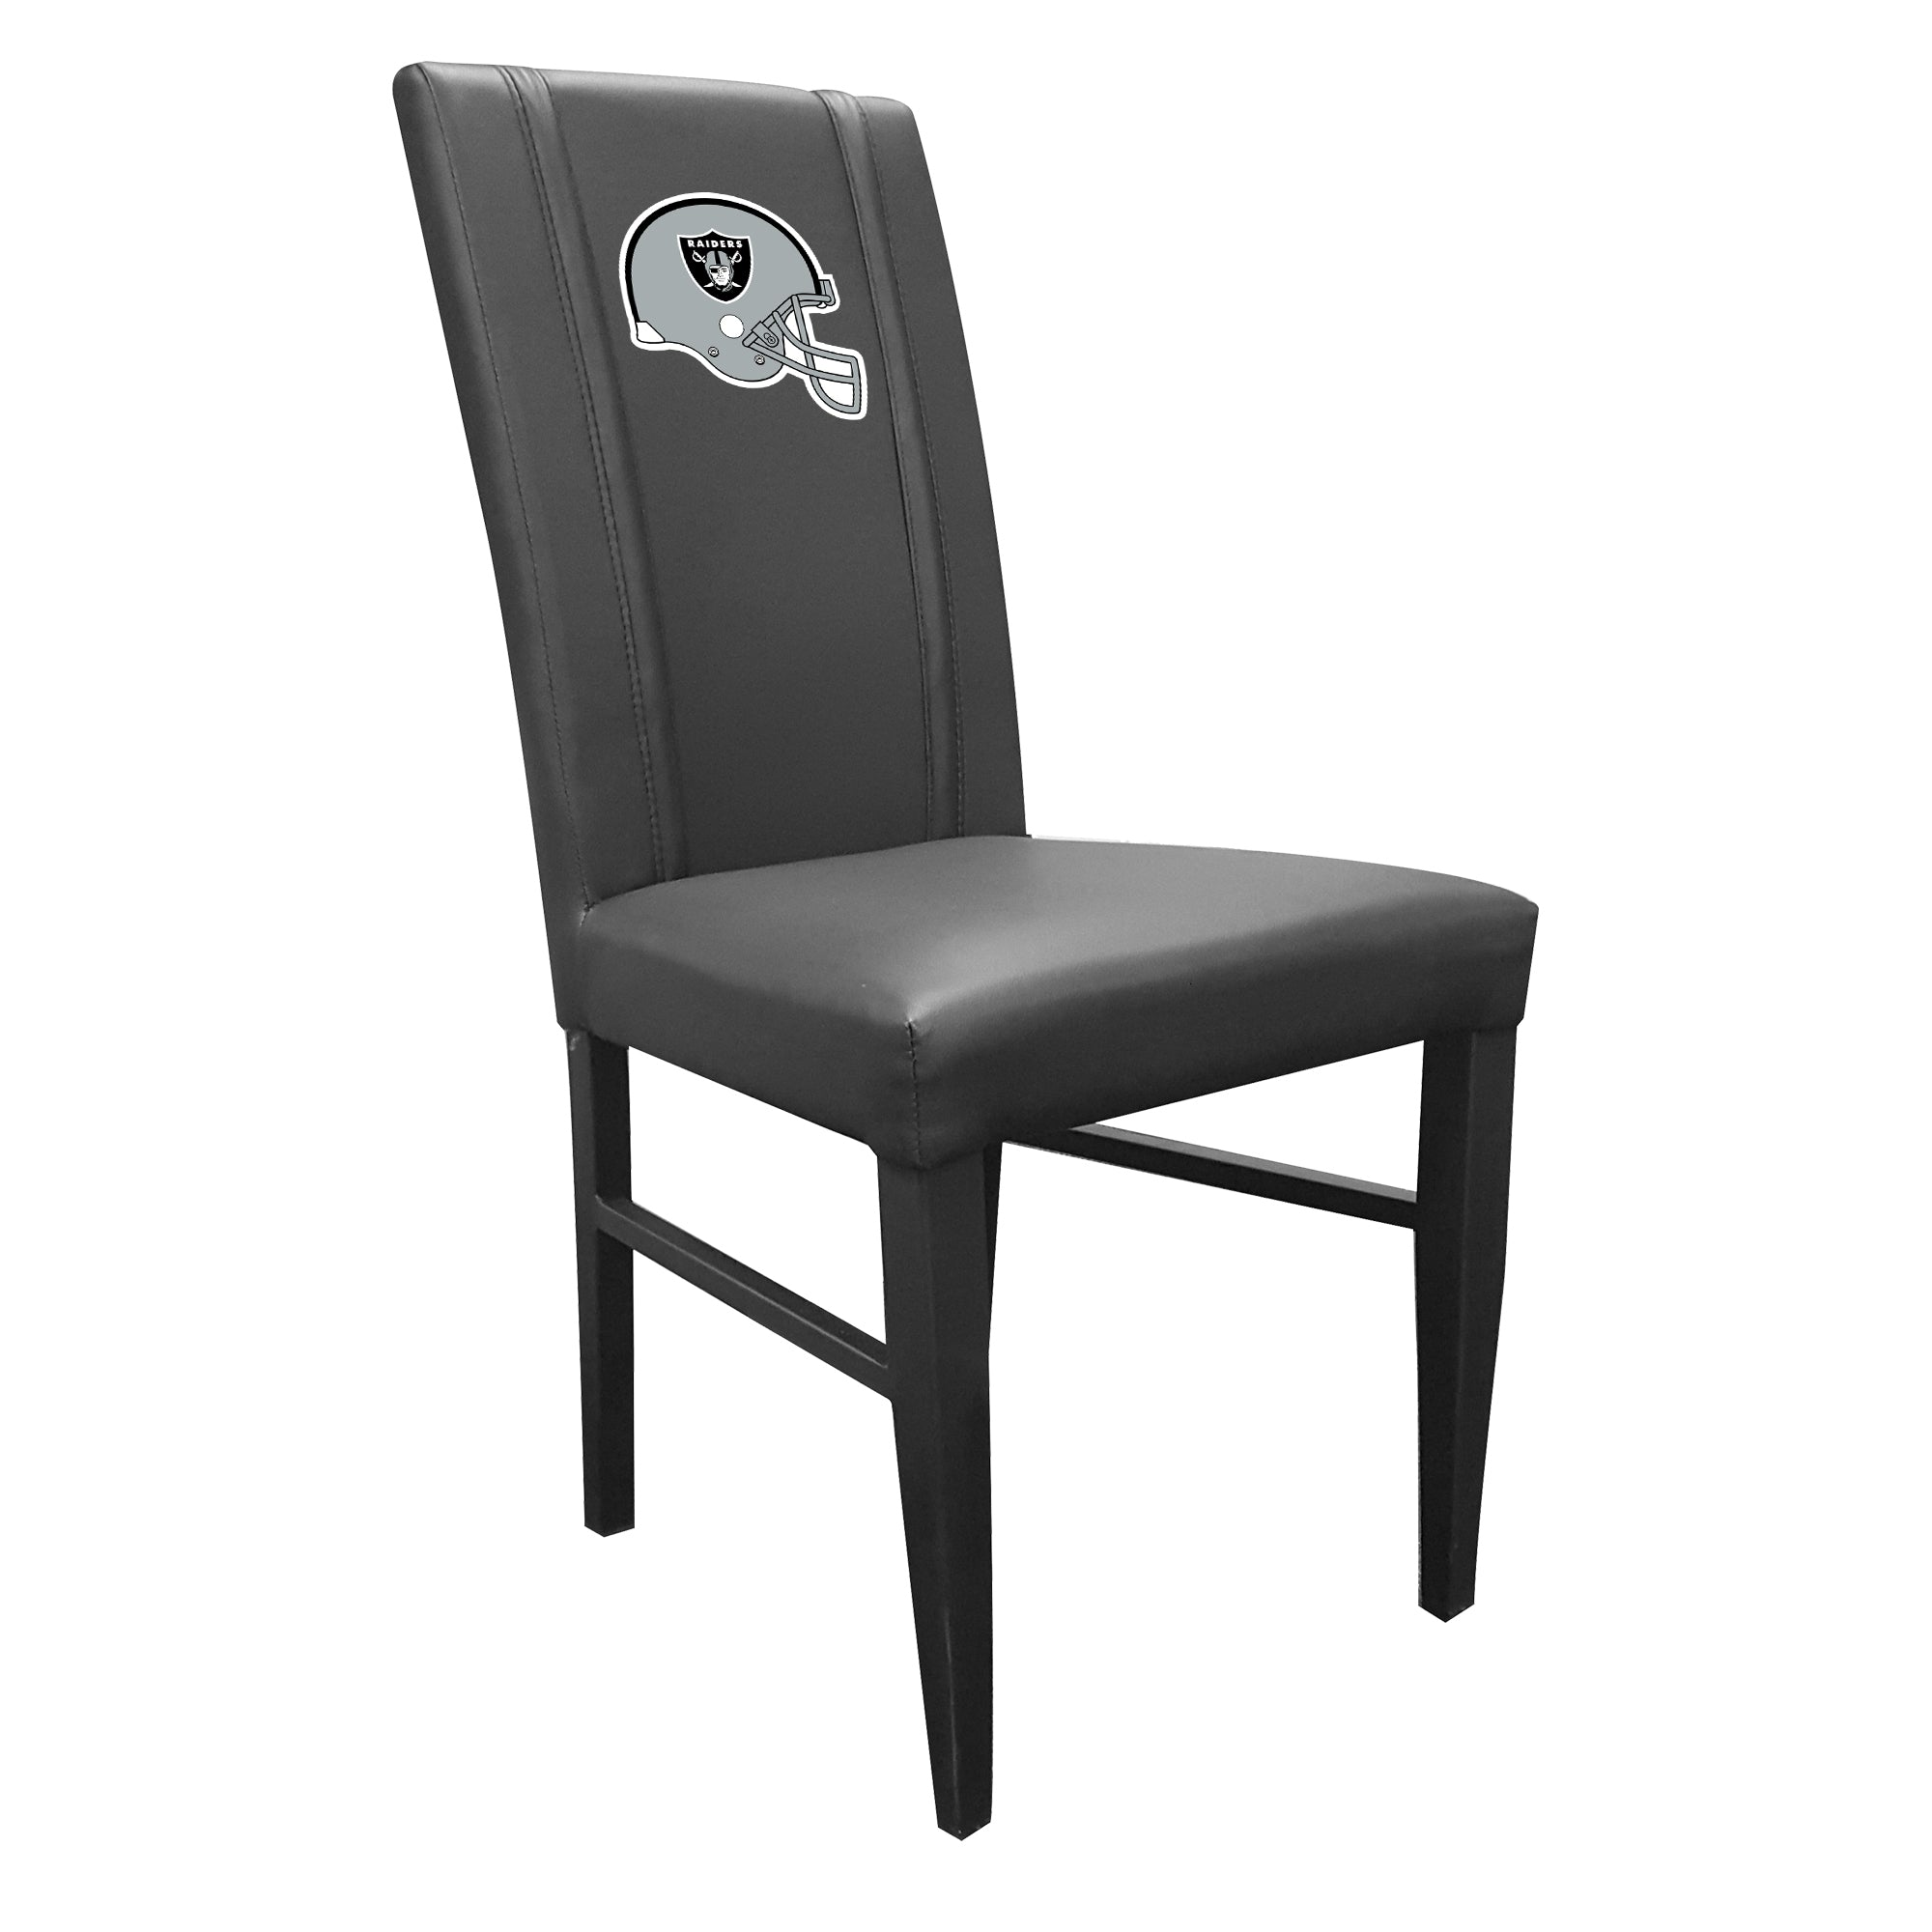 Side Chair 2000 with  Las Vegas Raiders Helmet Logo